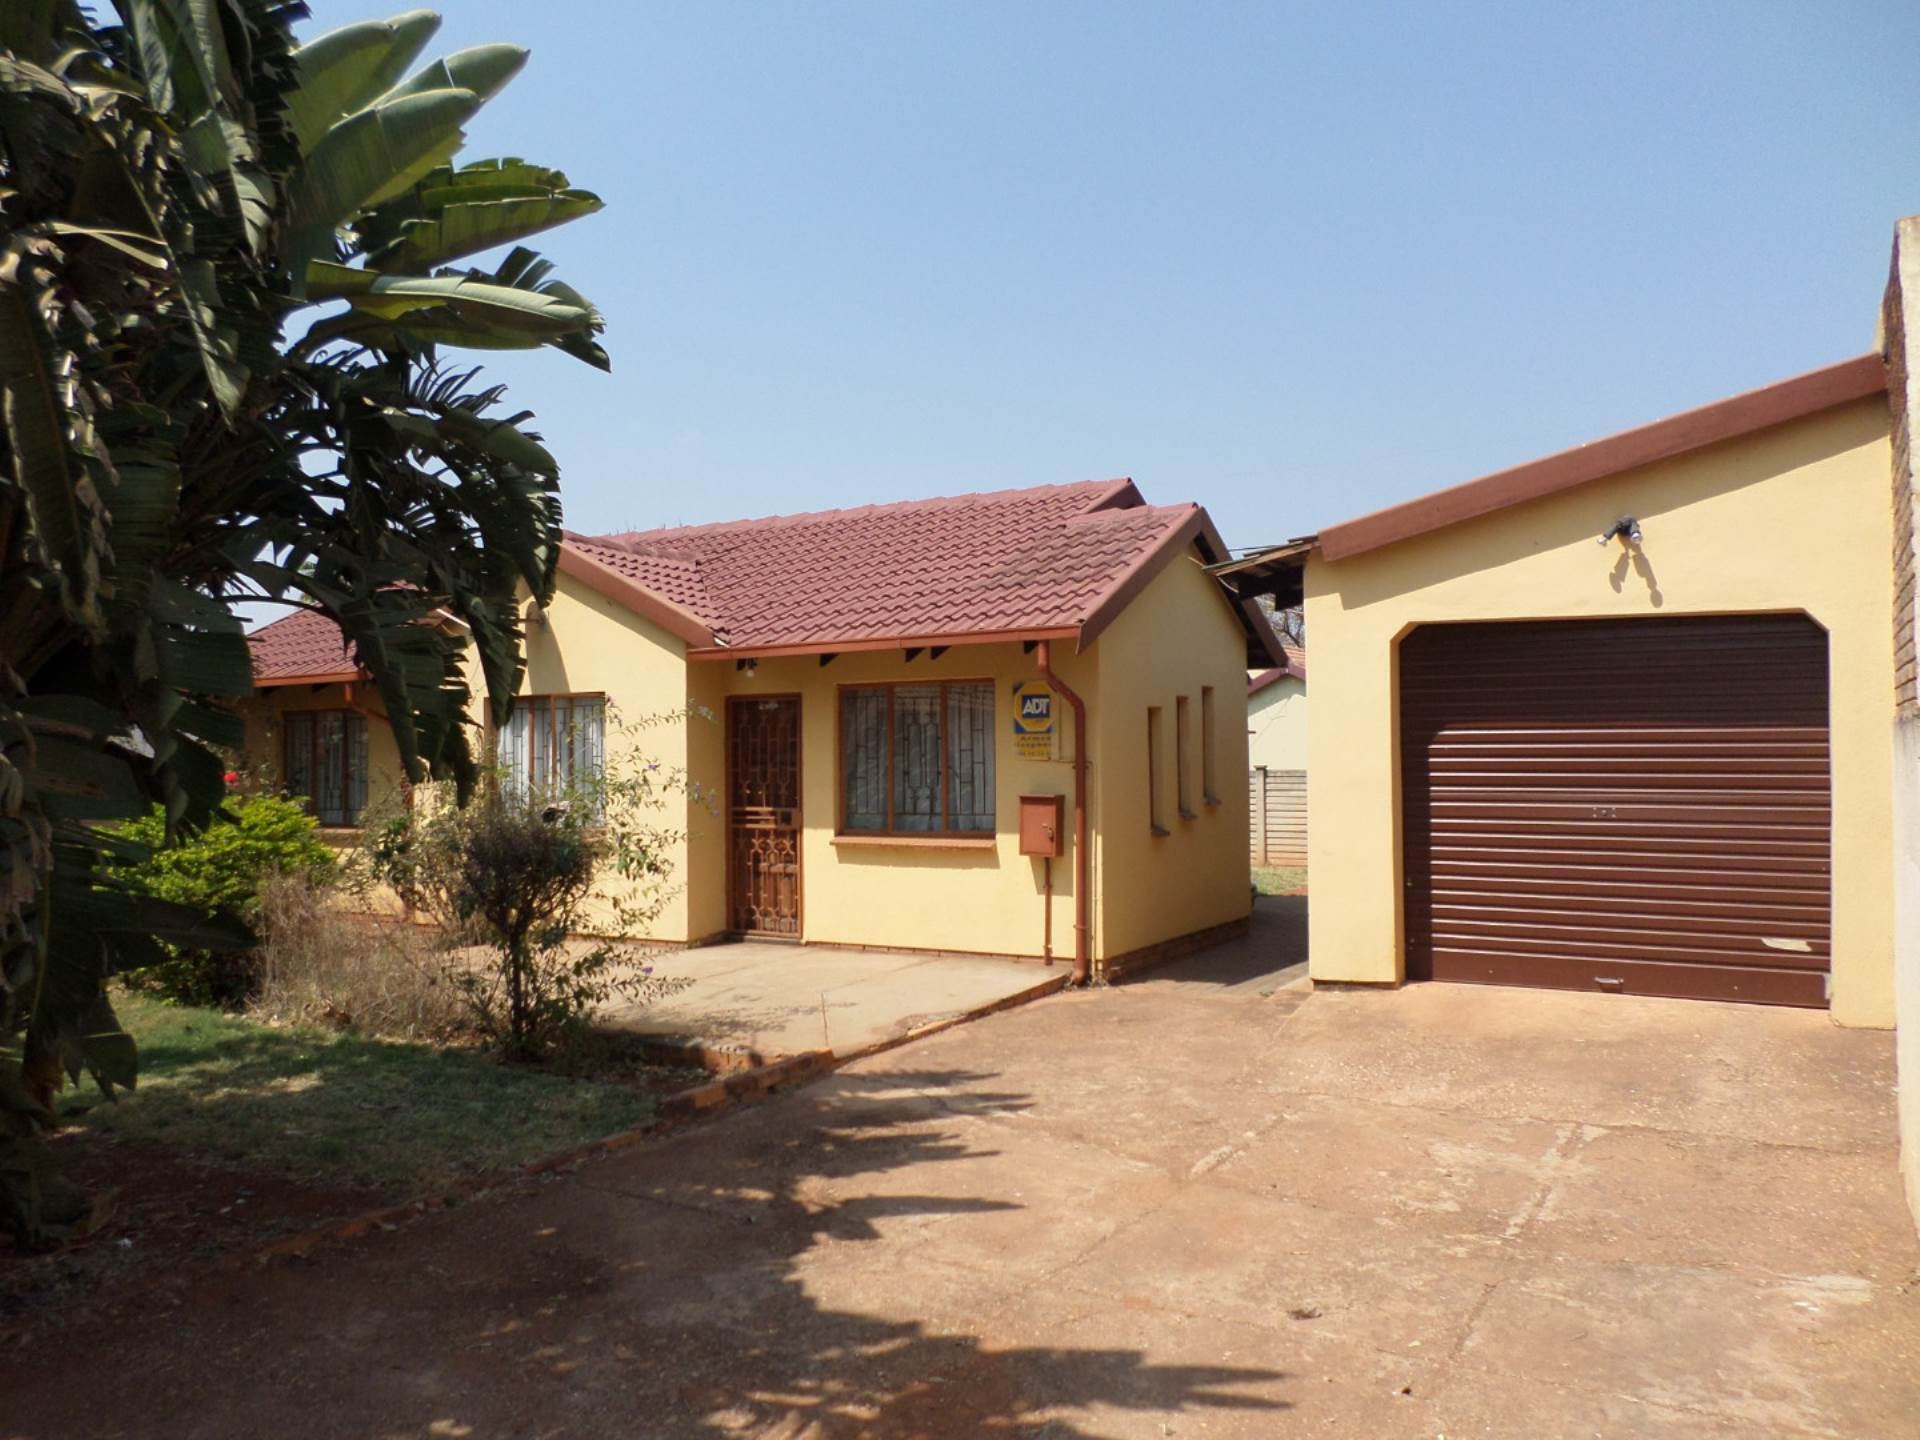 3 BedroomHouse For Sale In Hesteapark